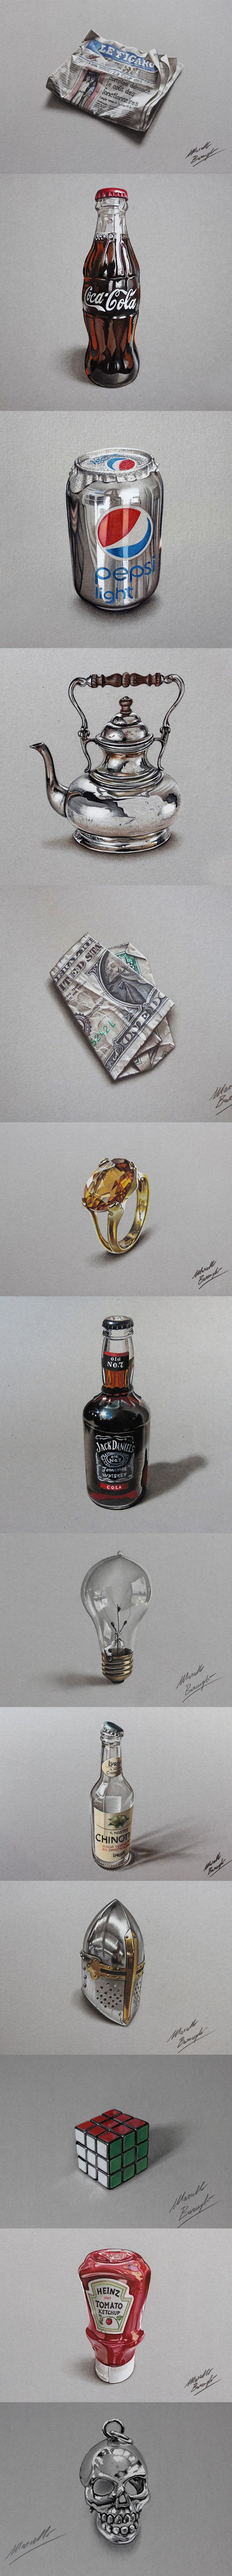 The Amazing Realistic Art of Marcello Barenghi.